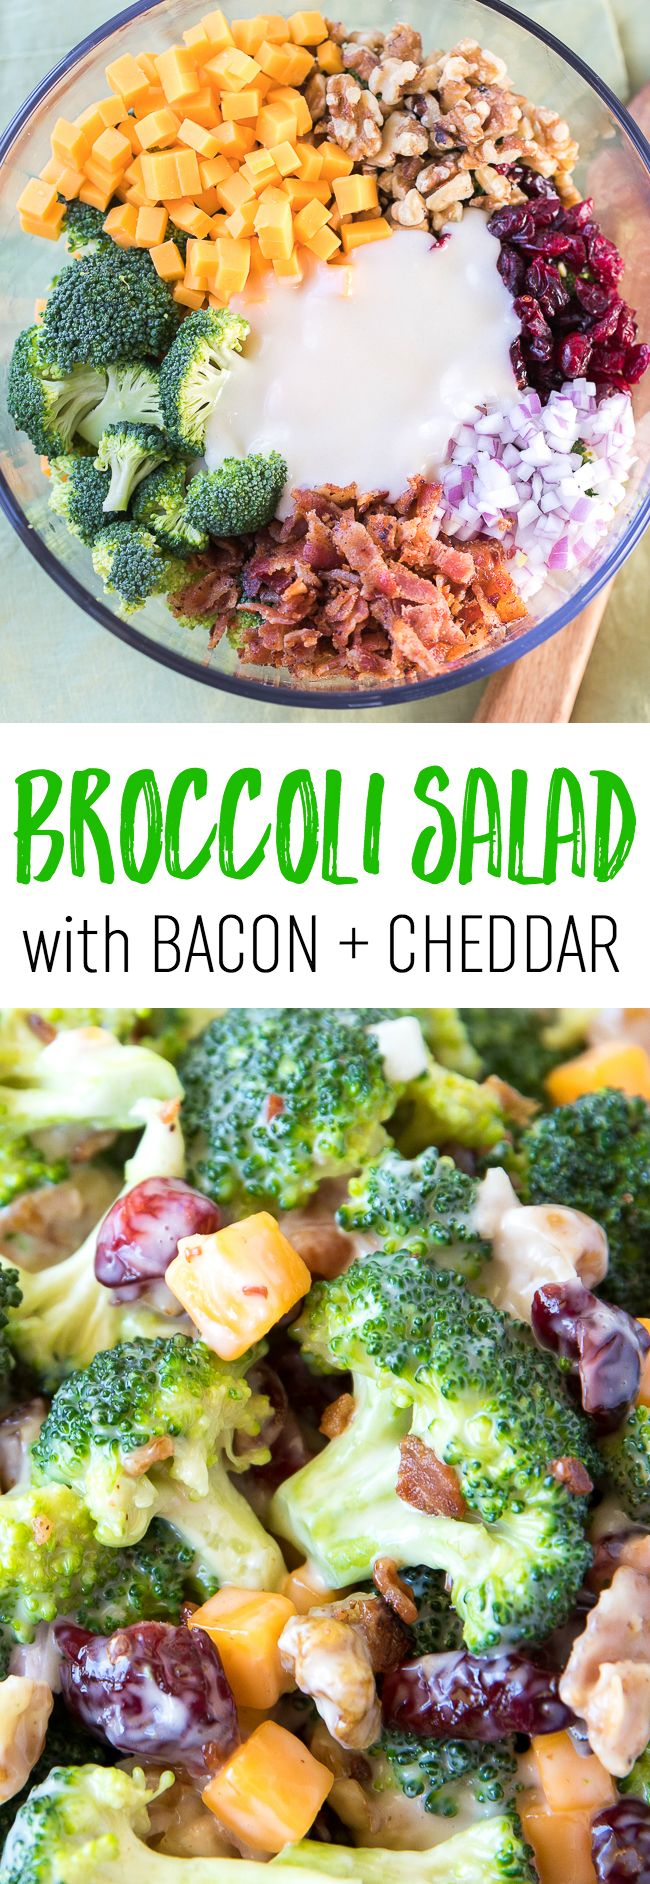 Broccoli Salad with Bacon and Cheddar Recipe | Best Broccoli Salad | Broccoli Salad with Dried Cranberries | Broccoli Salad with Walnuts